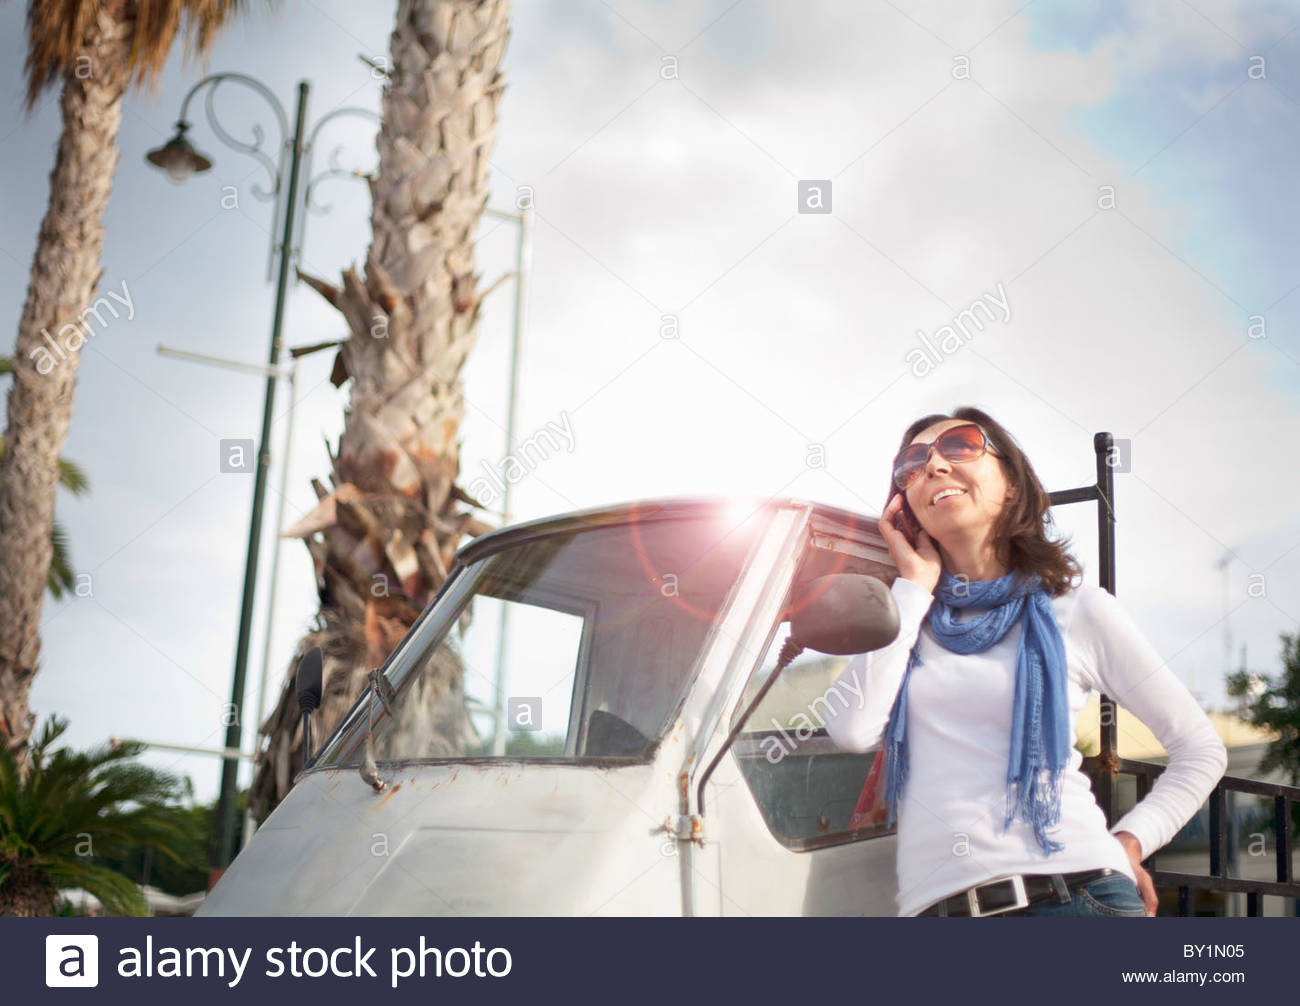 Woman on phone by small van Stock Photo